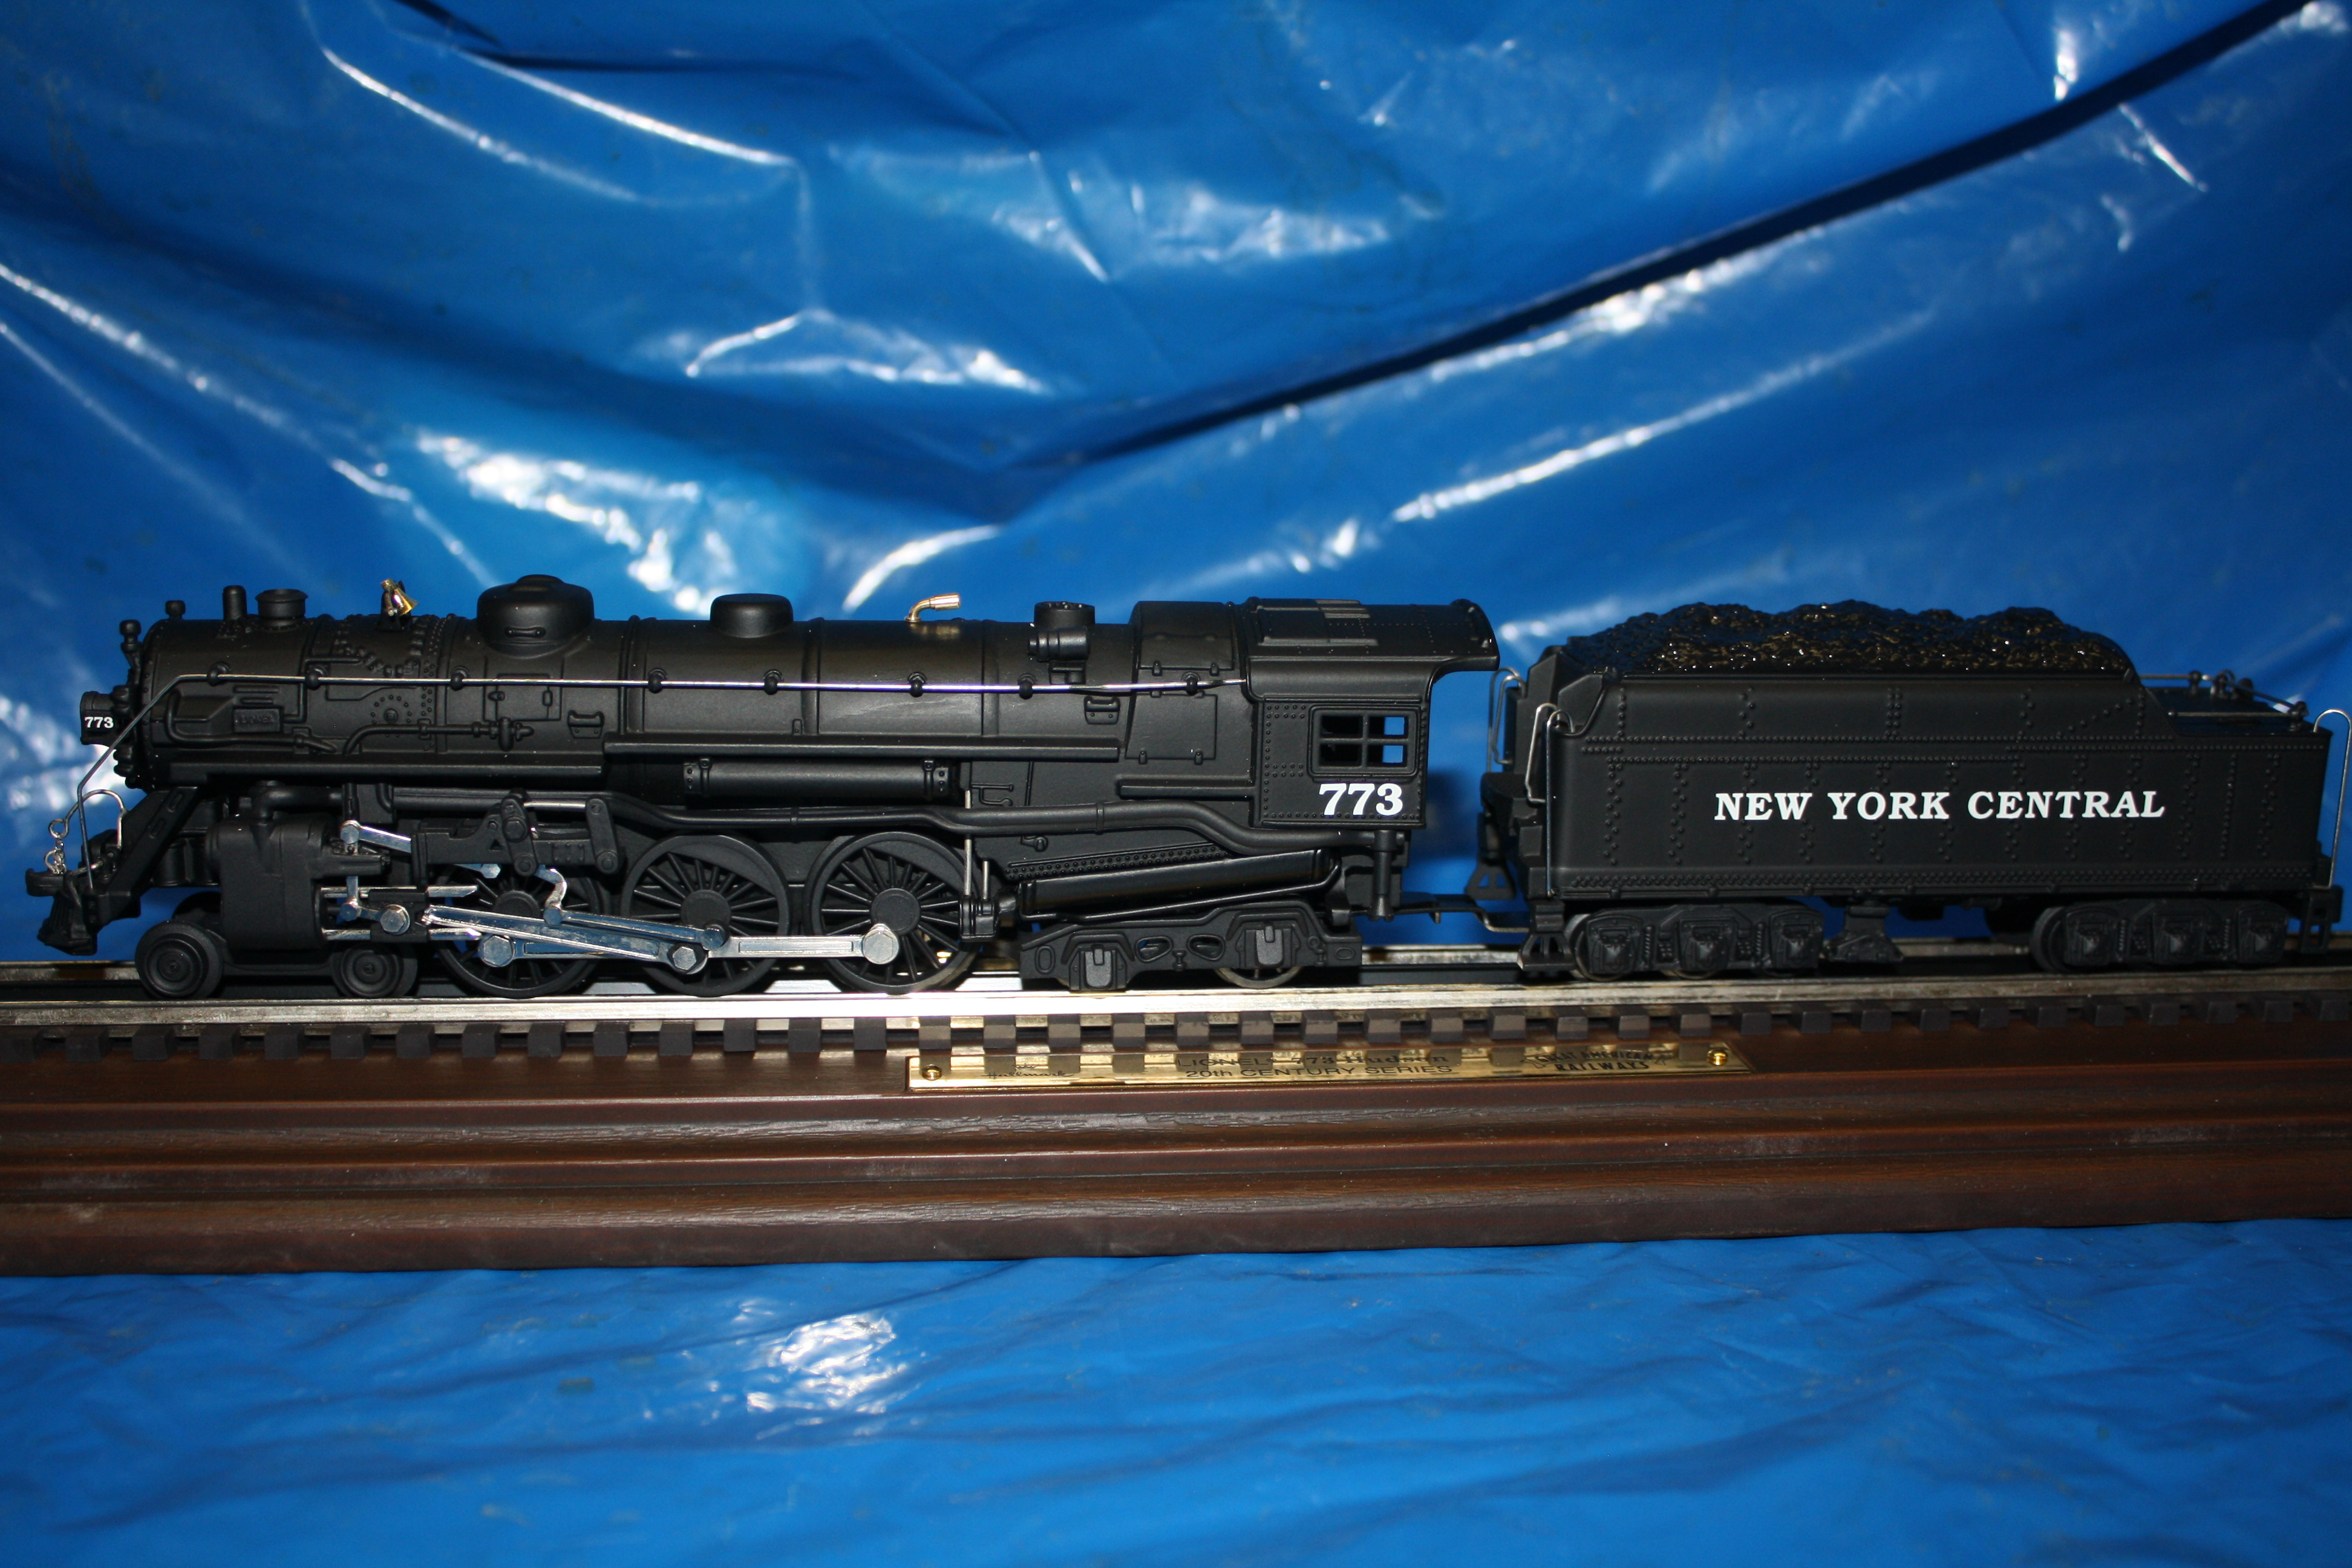 Hallmark Lionel 773 Hudson Steam Locomotive QHT7807